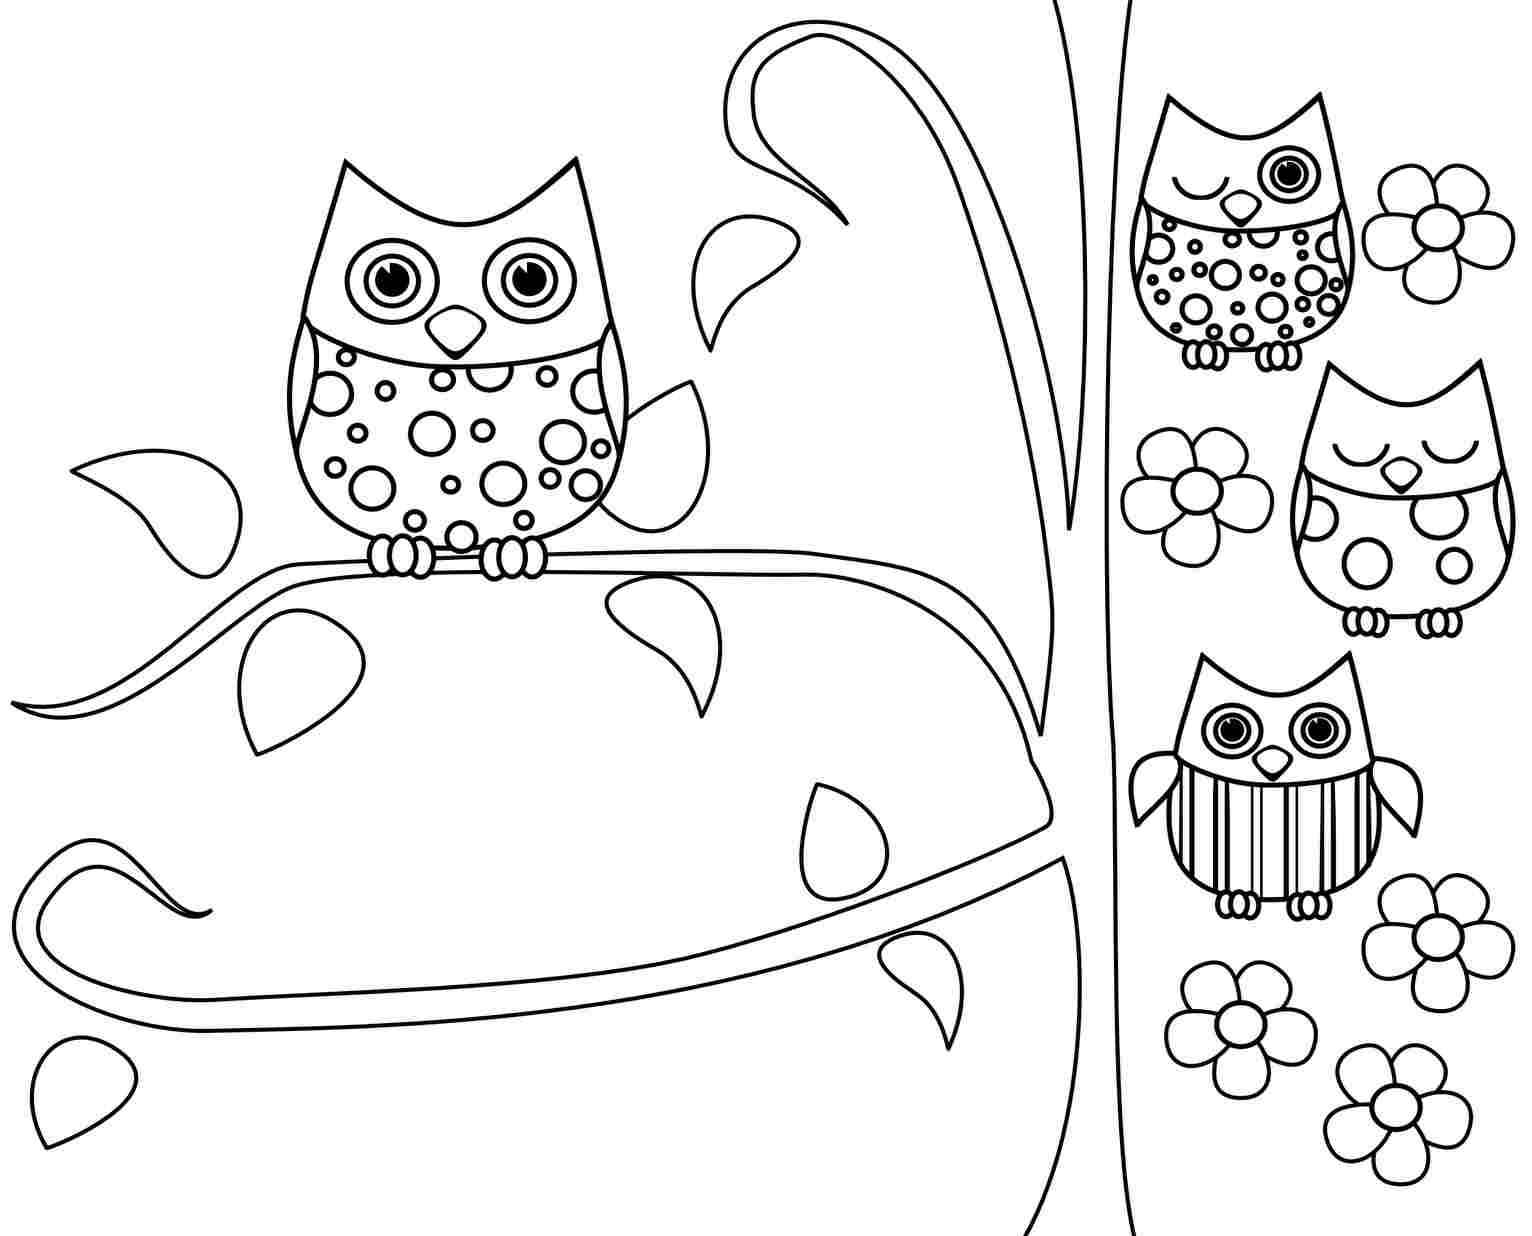 1532x1236 Cute Owl Coloring Pages To Print Best Coloring Book For Free